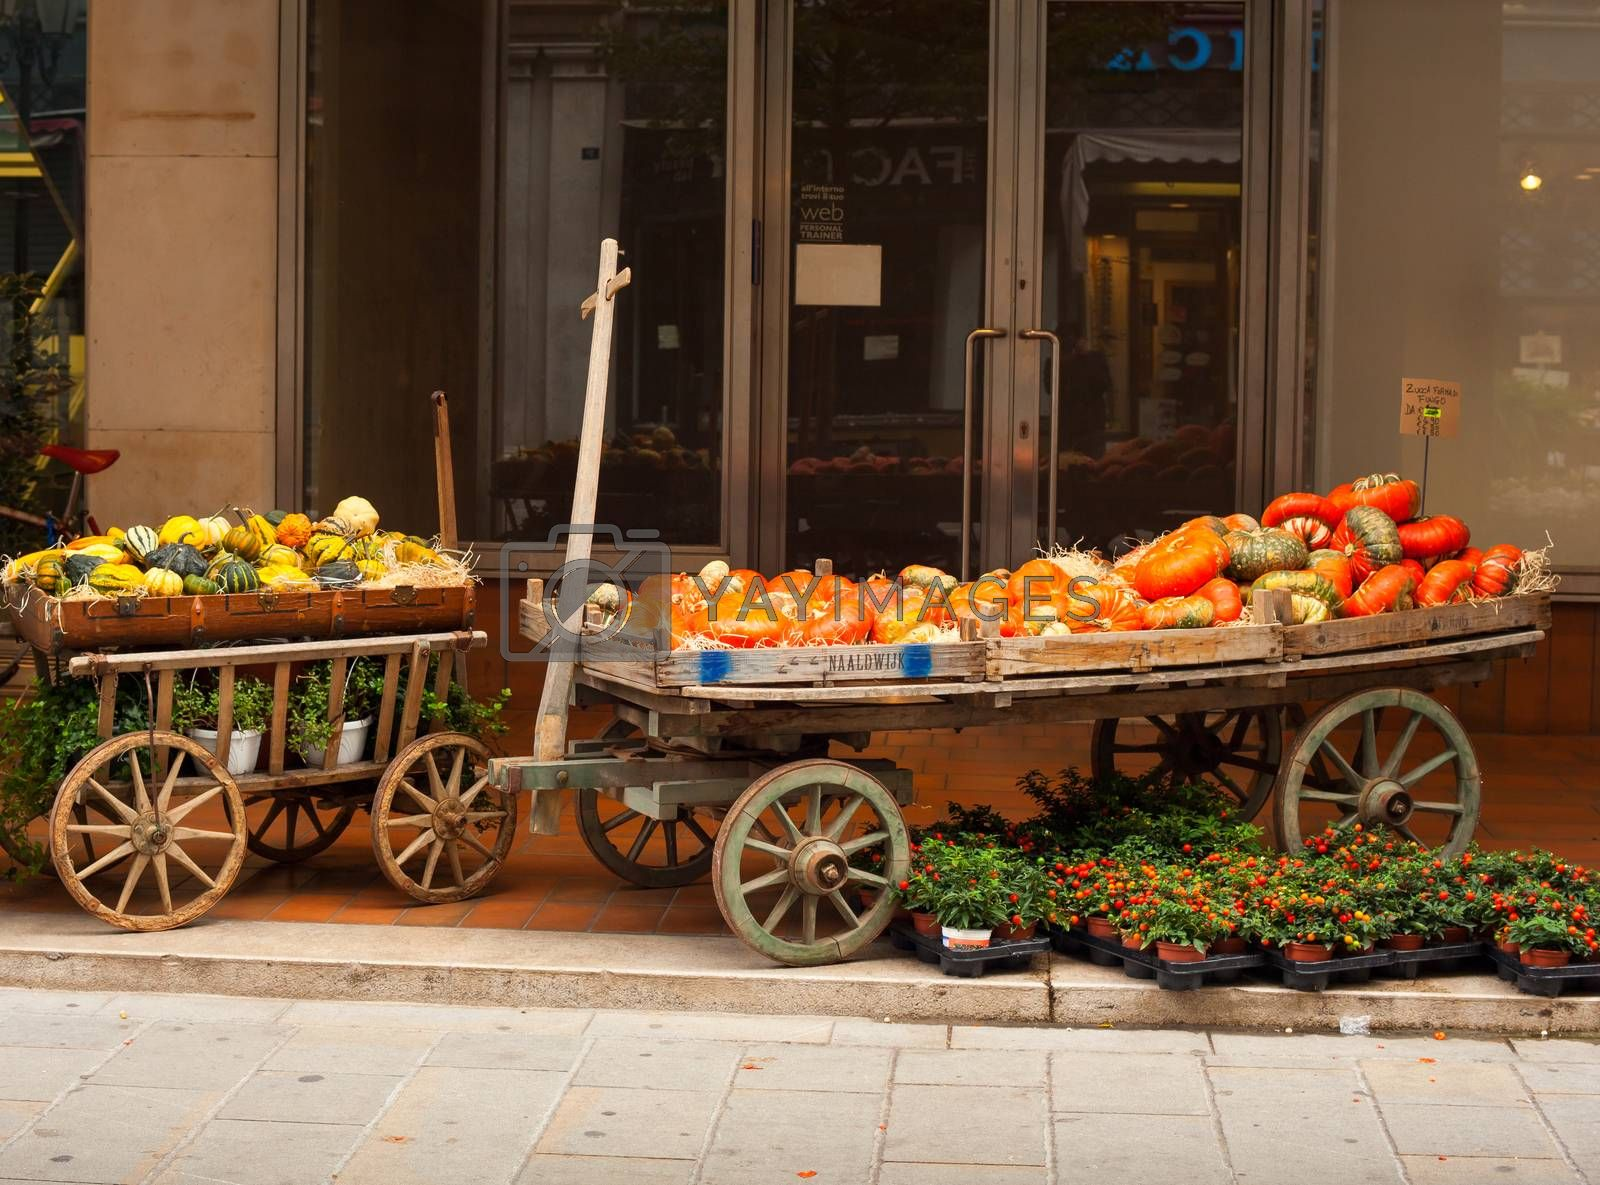 View of Pumpkins on vintage wooden cart